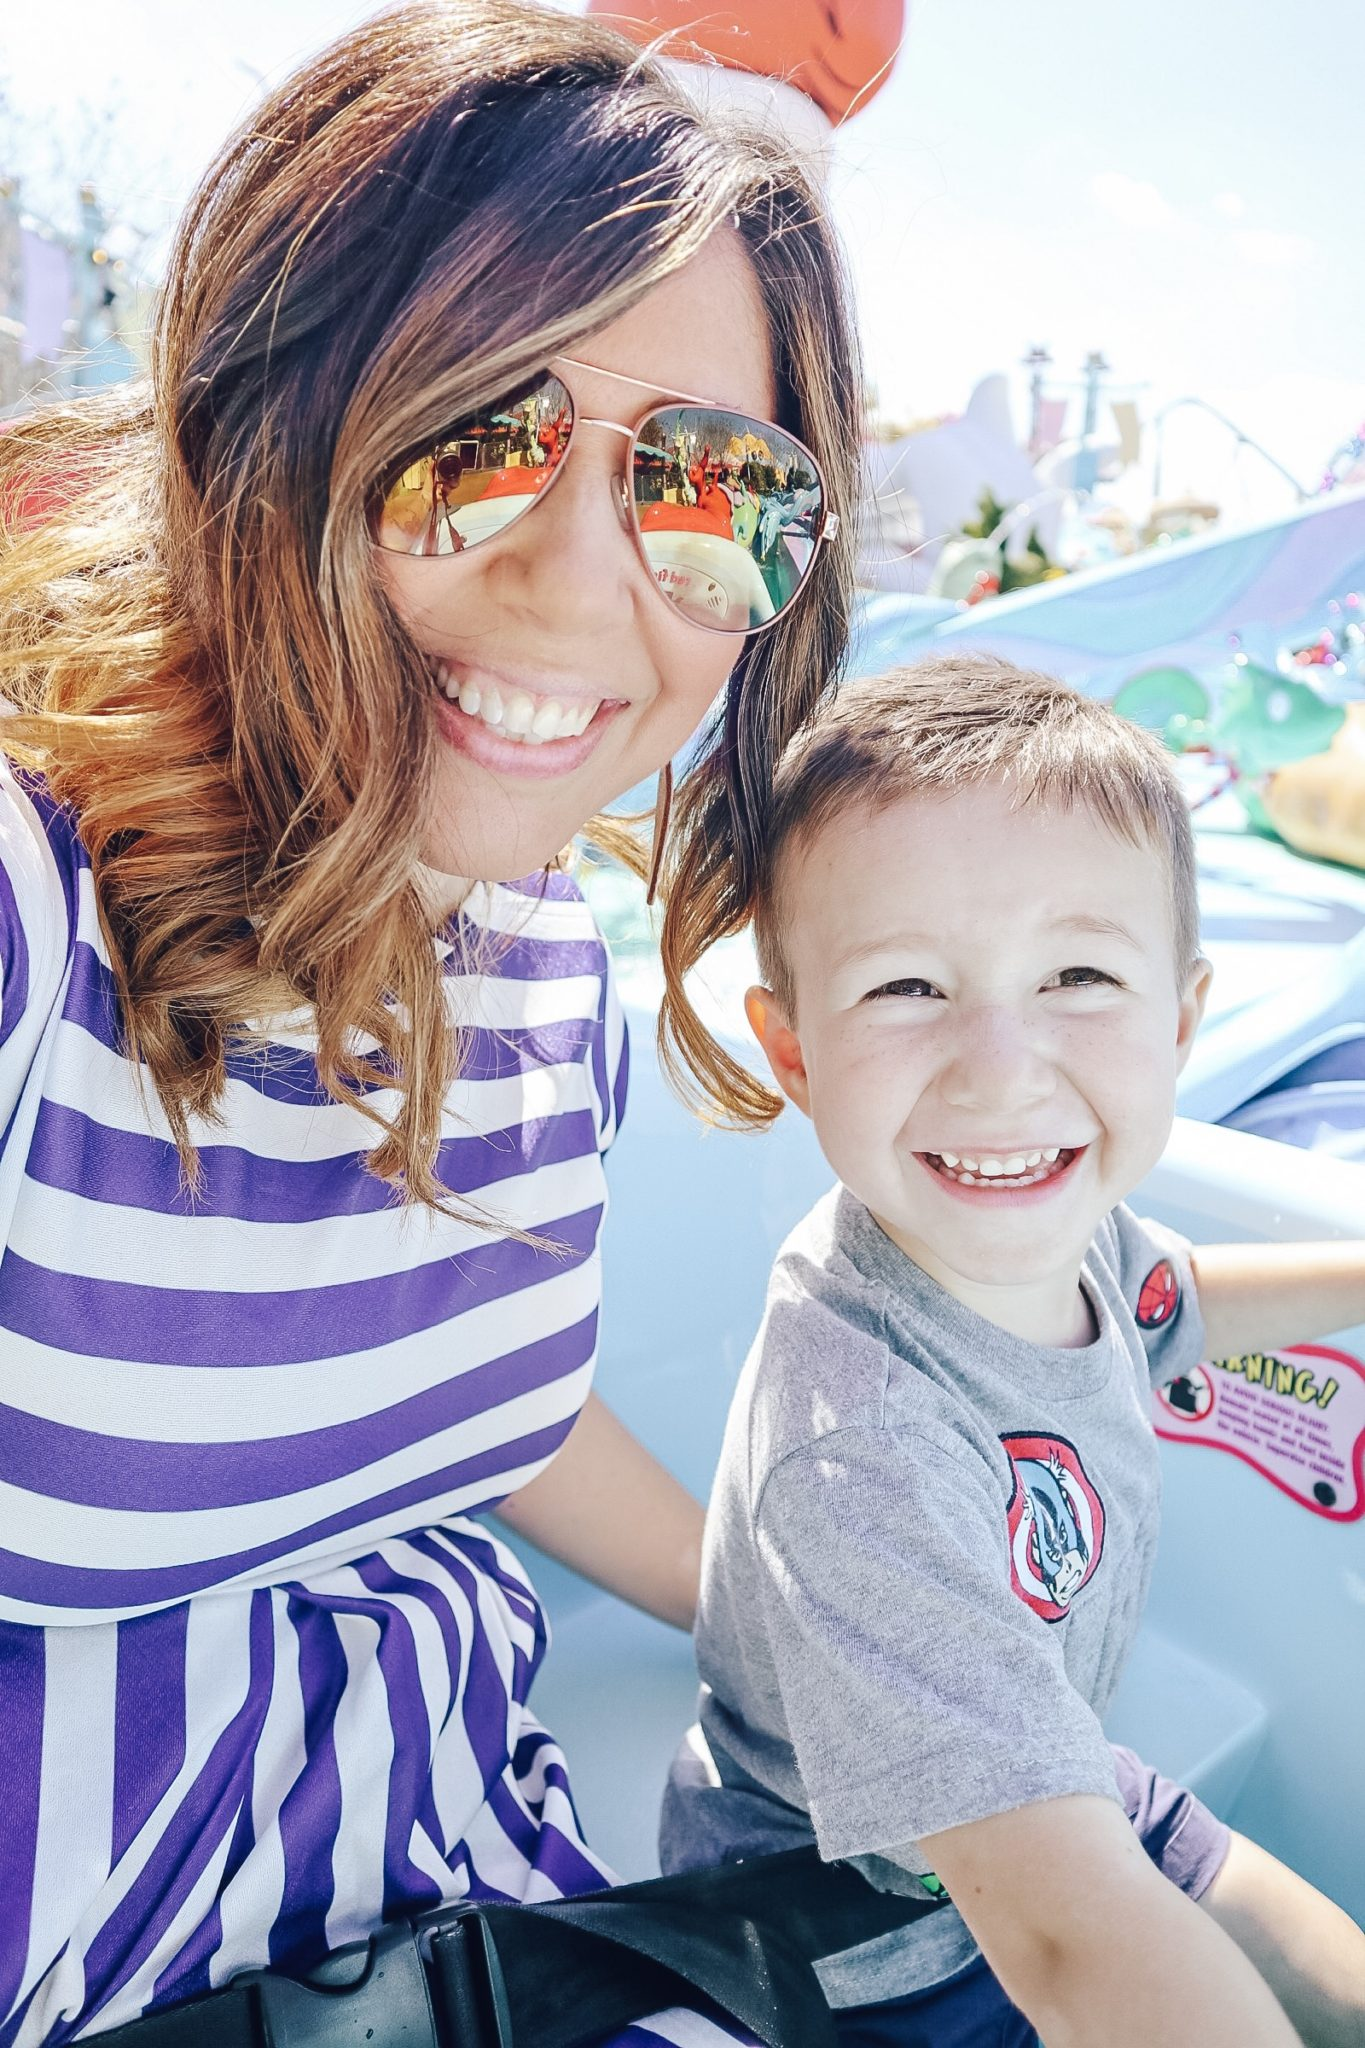 Universal Studios, Islands of Adventure for Toddlers and Preschoolers - by Tampa Lifestyle and Mom Blog, Crazy Life with Littles